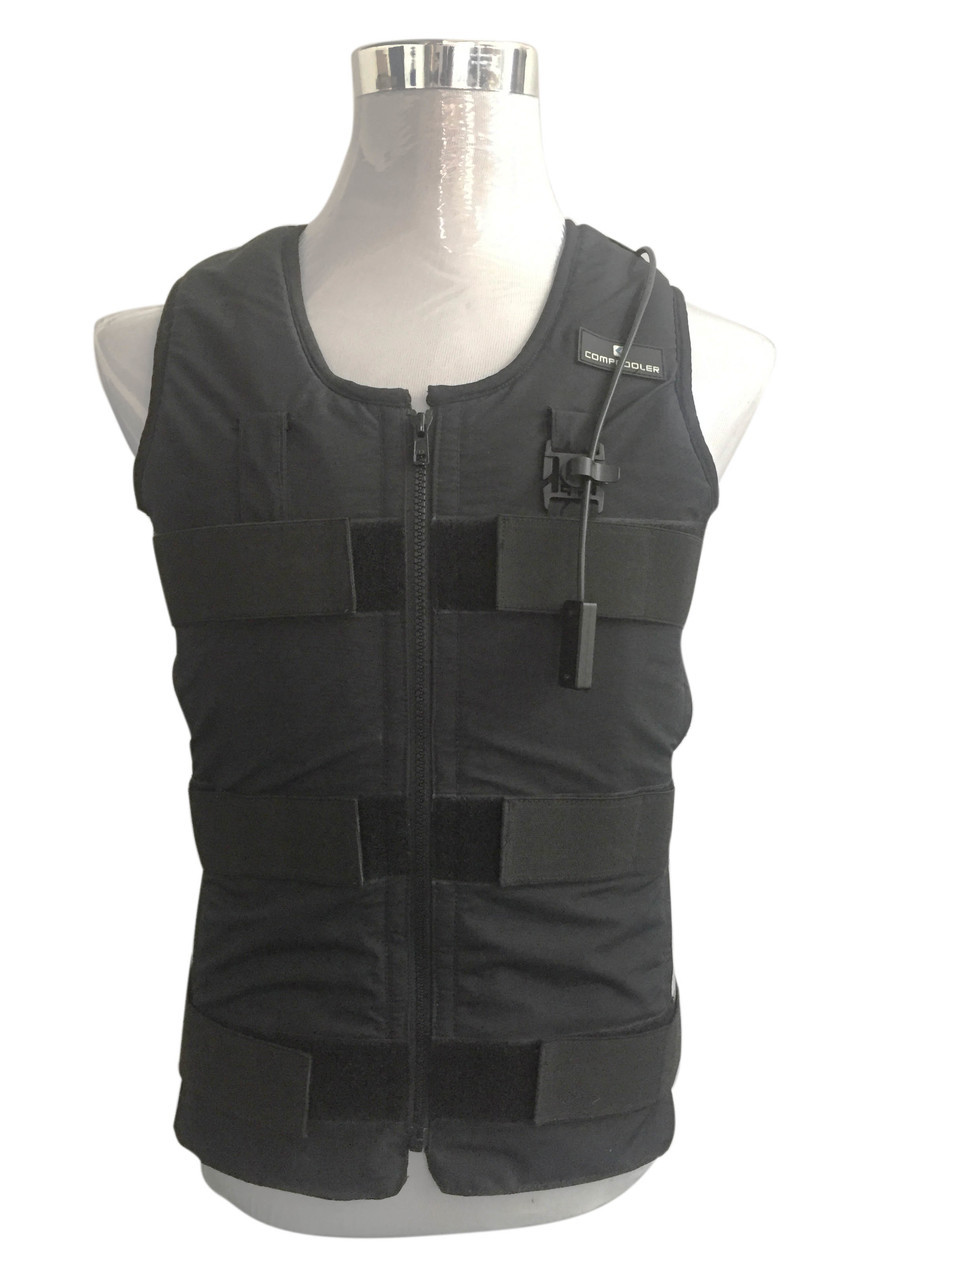 Circulating Cold Water Cooling Vest Stop The Heat Before The Heat